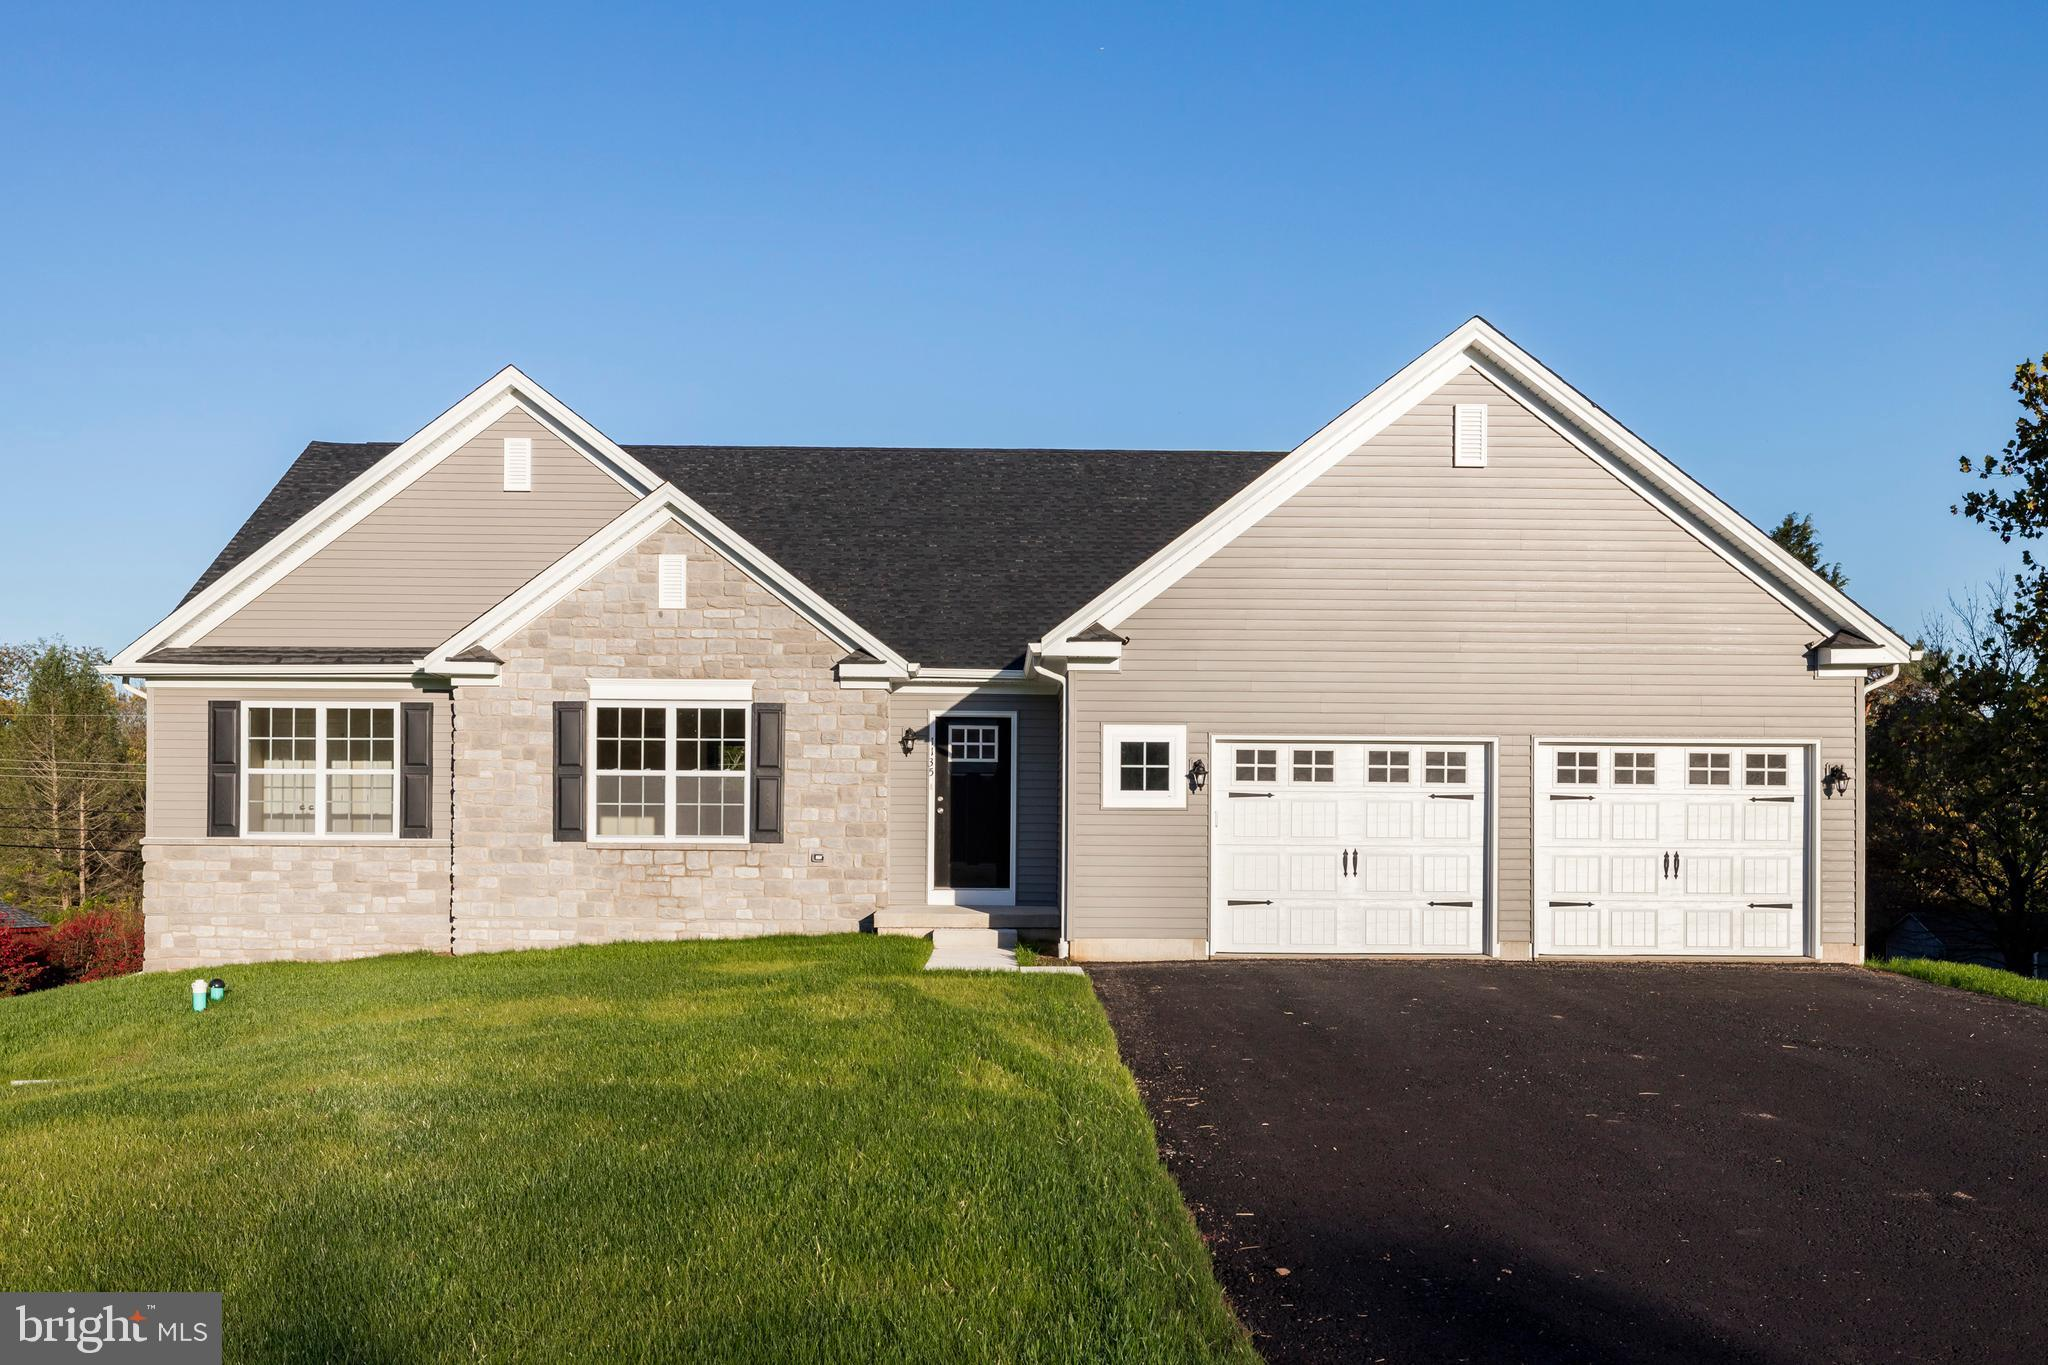 Immediate occupancy available at this NEW CONSTRUCTION ranch home! Enjoy true one floor living with no HOA fees on a half acre lot in a charming neighborhood in Lower Pottsgrove. A nice wide driveway leads to an oversized 2-car garage with beautiful barn-style doors. You can choose to enter through the garage into the mudroom/laundry room, or come in through your striking modern front door into a foyer with double coat closet. A large sun-soaked living room flows into a beautiful eat-in kitchen with real wood cabinetry, quartz countertops, island with trash drawer and electric, recessed lighting, stainless appliances, and an enormous walk-in pantry. The eat-in area is very roomy and offers access to the buyer's future deck overlooking the private rear yard. Just past the laundry room is the spacious and private en-suite bedroom with large walk-in closet and bathroom with walk-in shower, linen closet, and double vanity.  The other side of the home offers 2 additional bedrooms, both with 2 double closets, that share a full hall bath with tub surround and single vanity for wheel chair friendly access. The lower level is ready to finish and offers walk-out egress and potential for additional living space. There is so much to love and so little worry with brand new mechanicals, a sprinkler system, PEX plumbing, and the intentional luxury of being able to age in place! Come see this brand new beauty before it's gone!